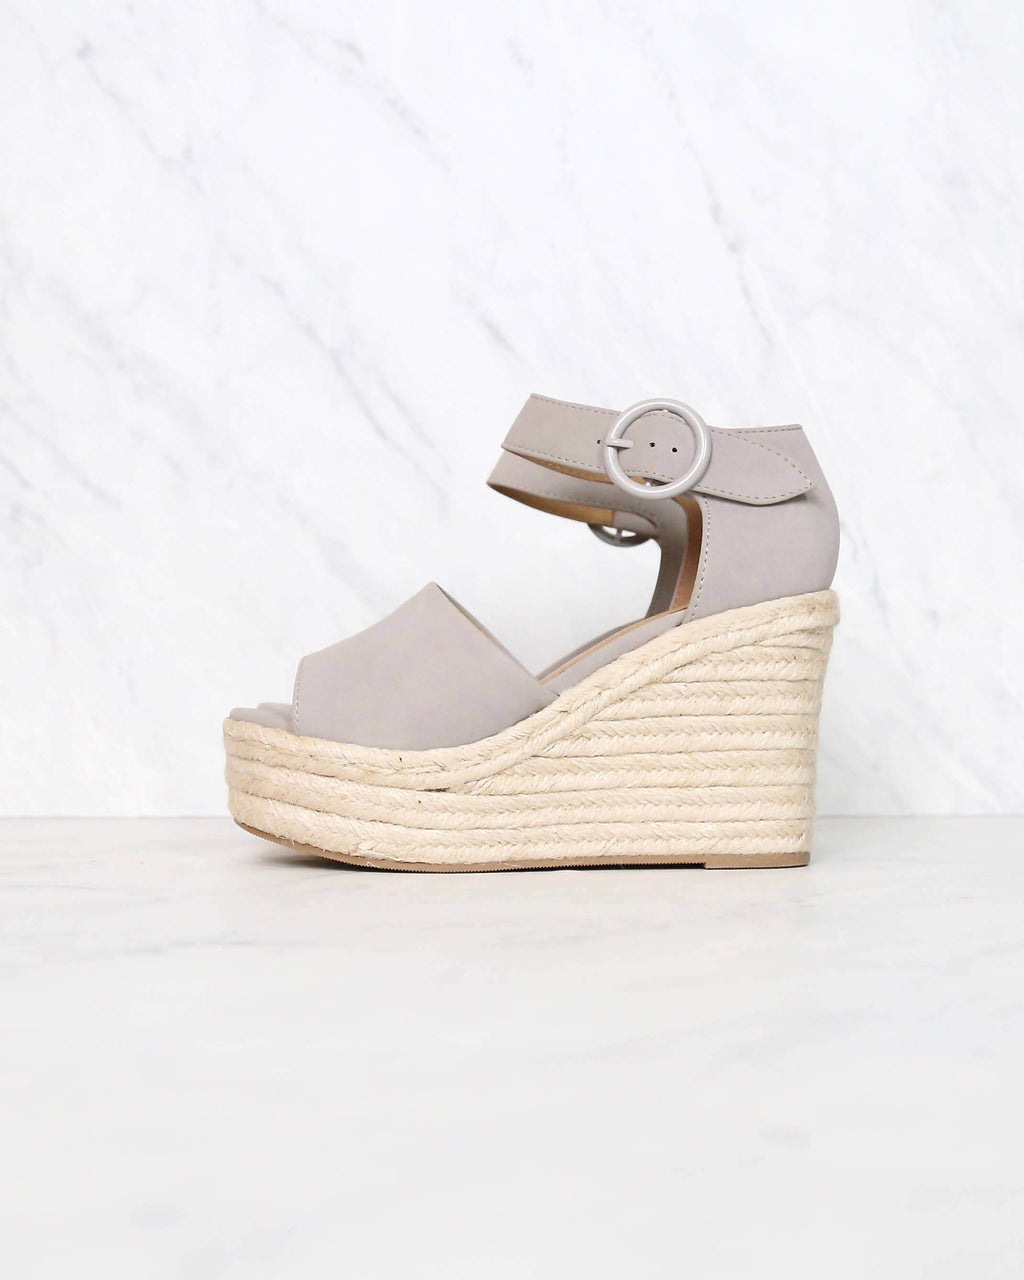 Sassy Espadrille Wedges in Light Grey